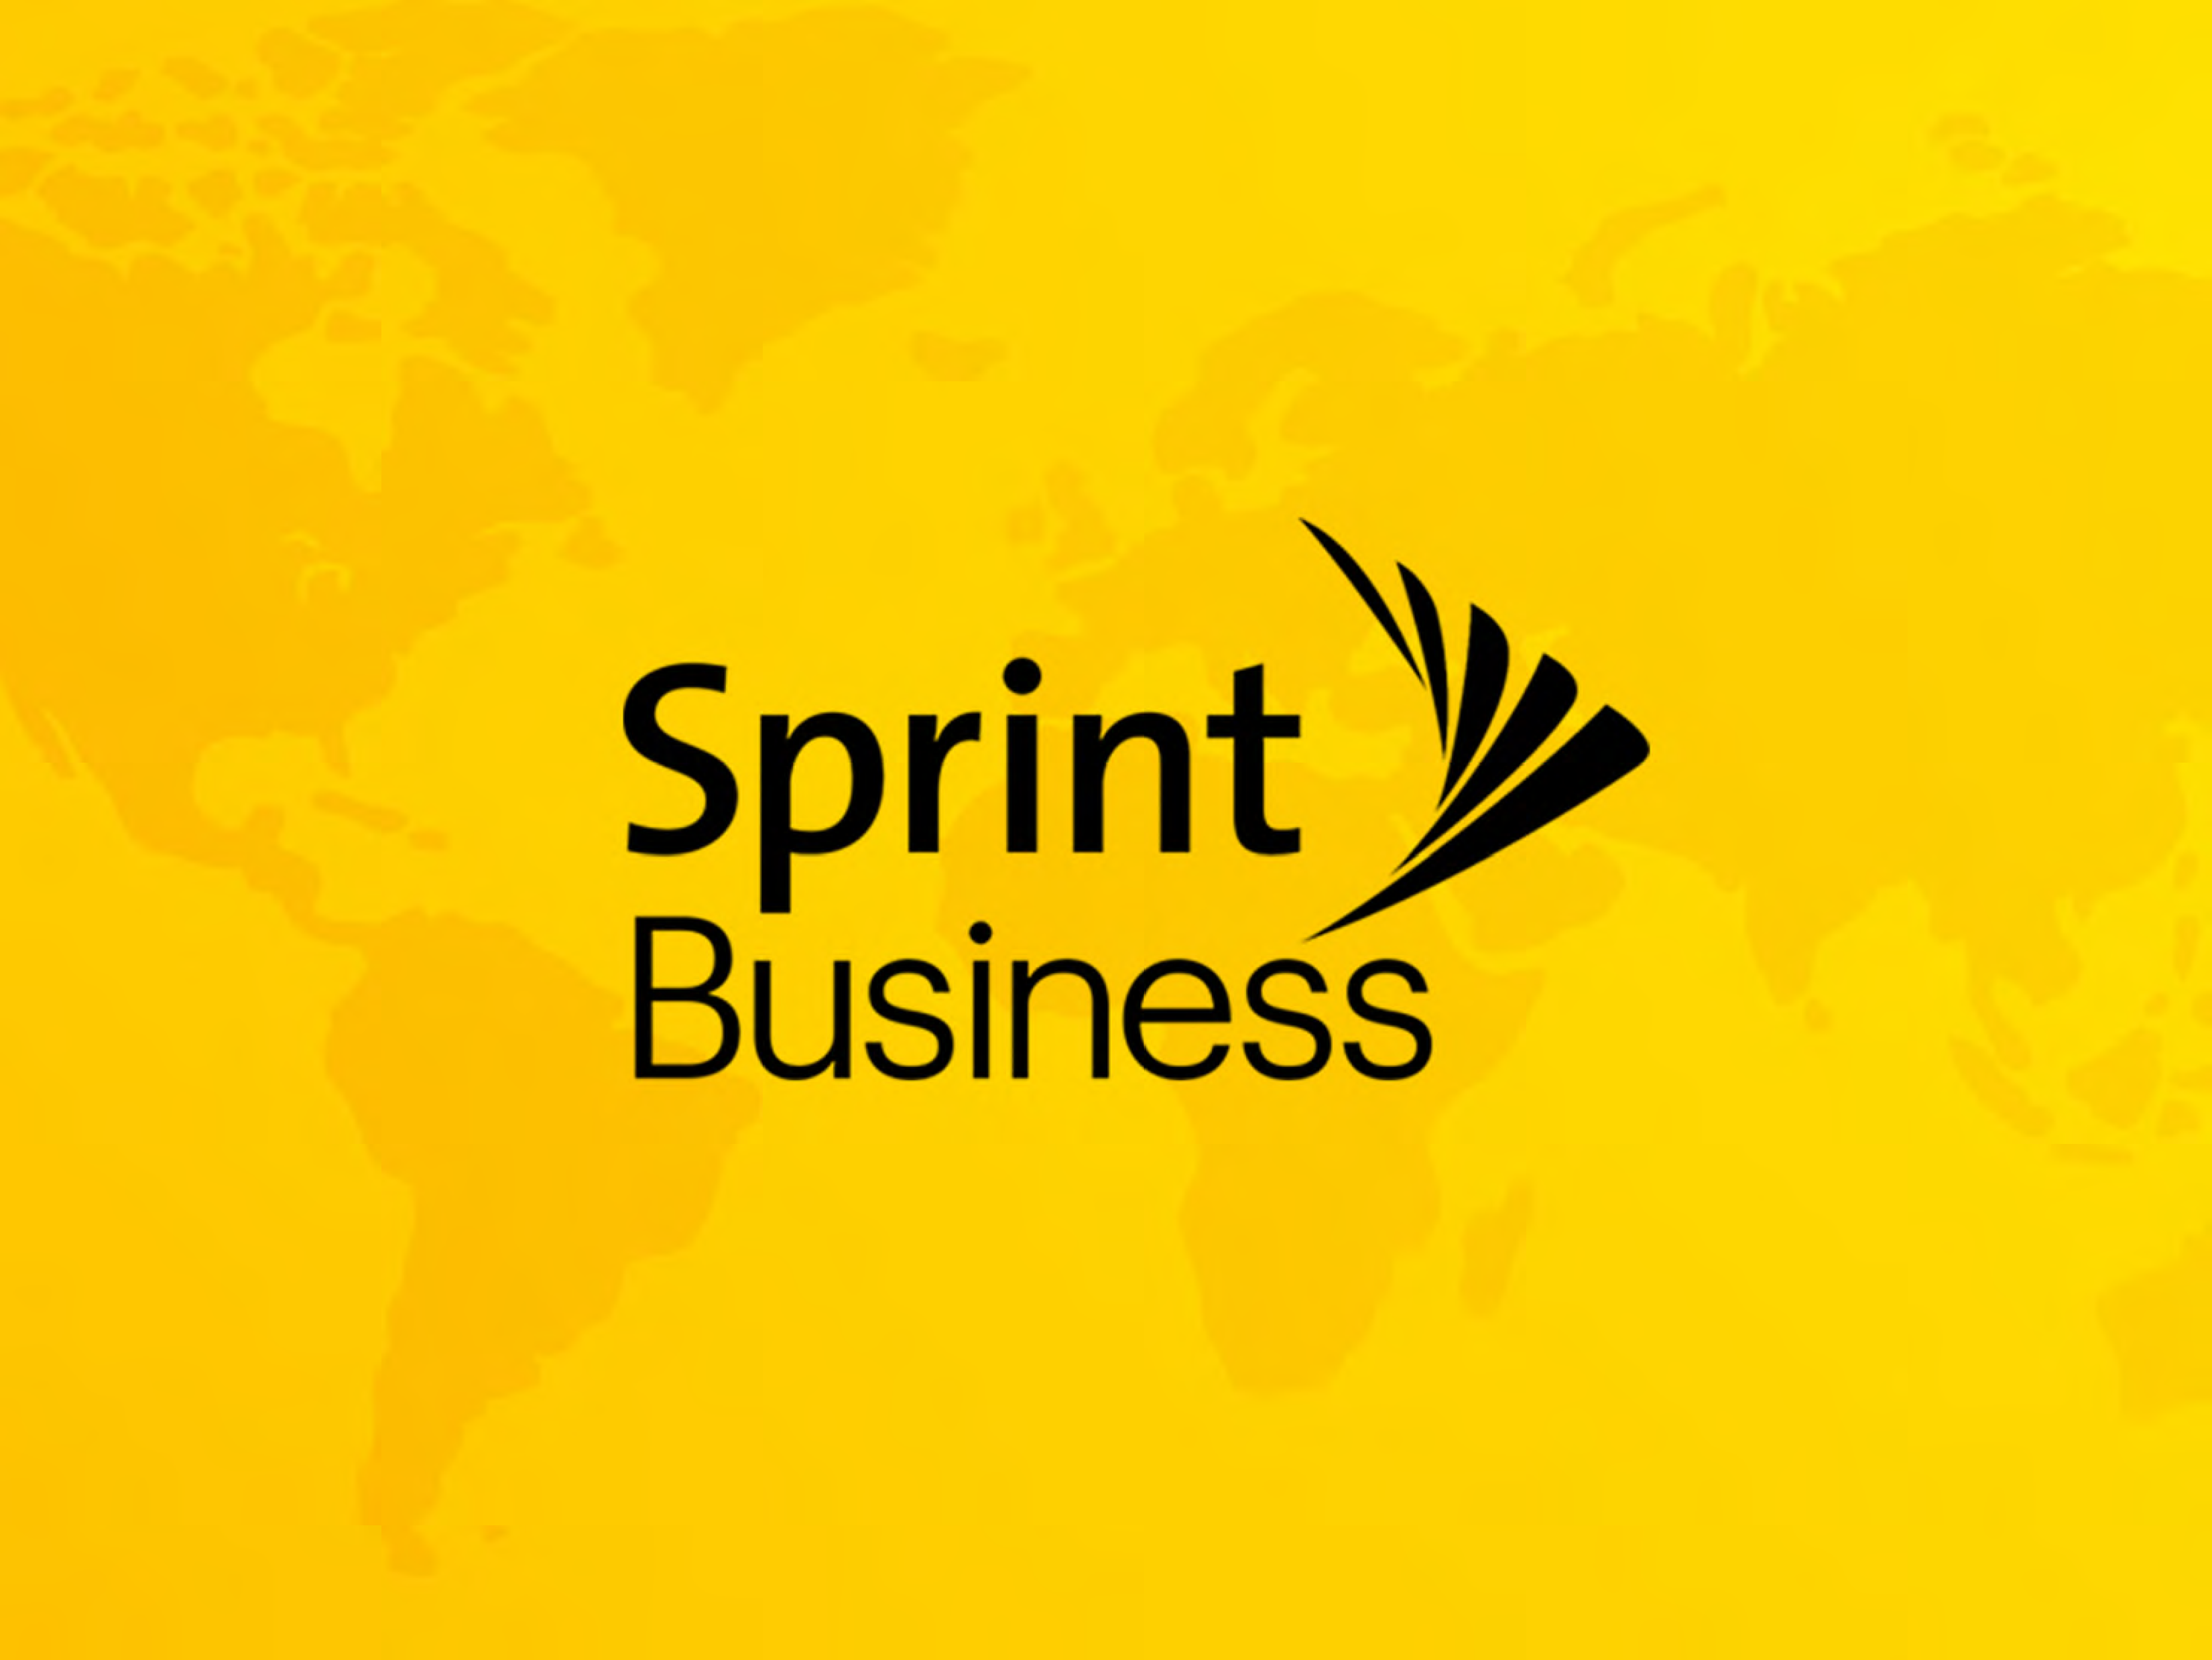 Sprint Business – ALPHA CONNECTED, INC